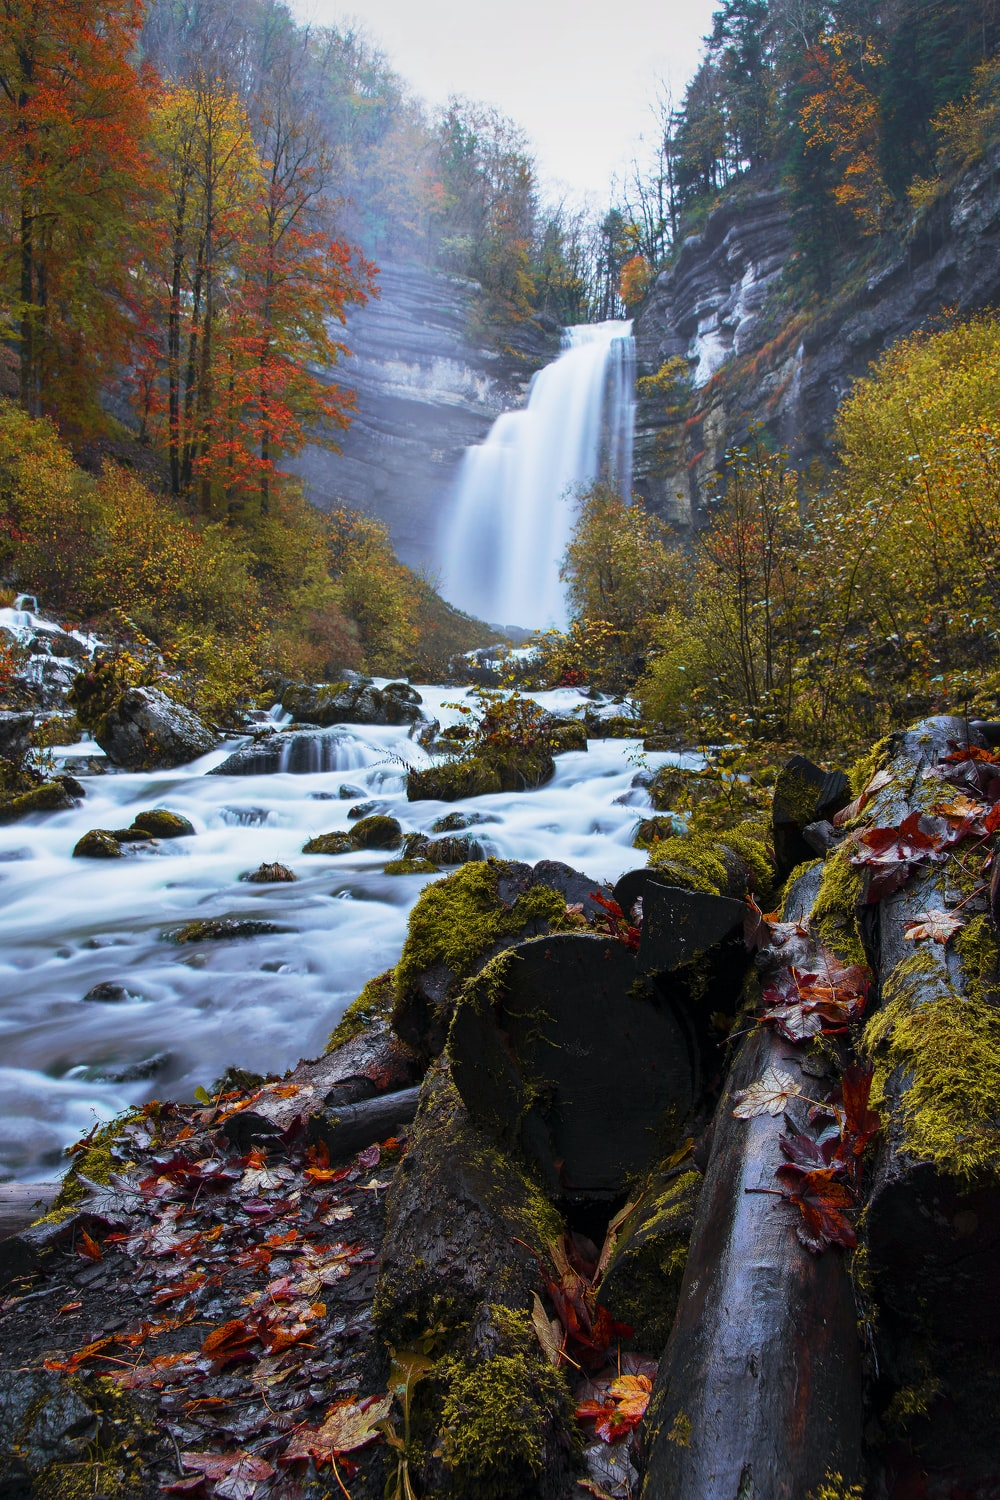 water falls on rocky mountain during daytime